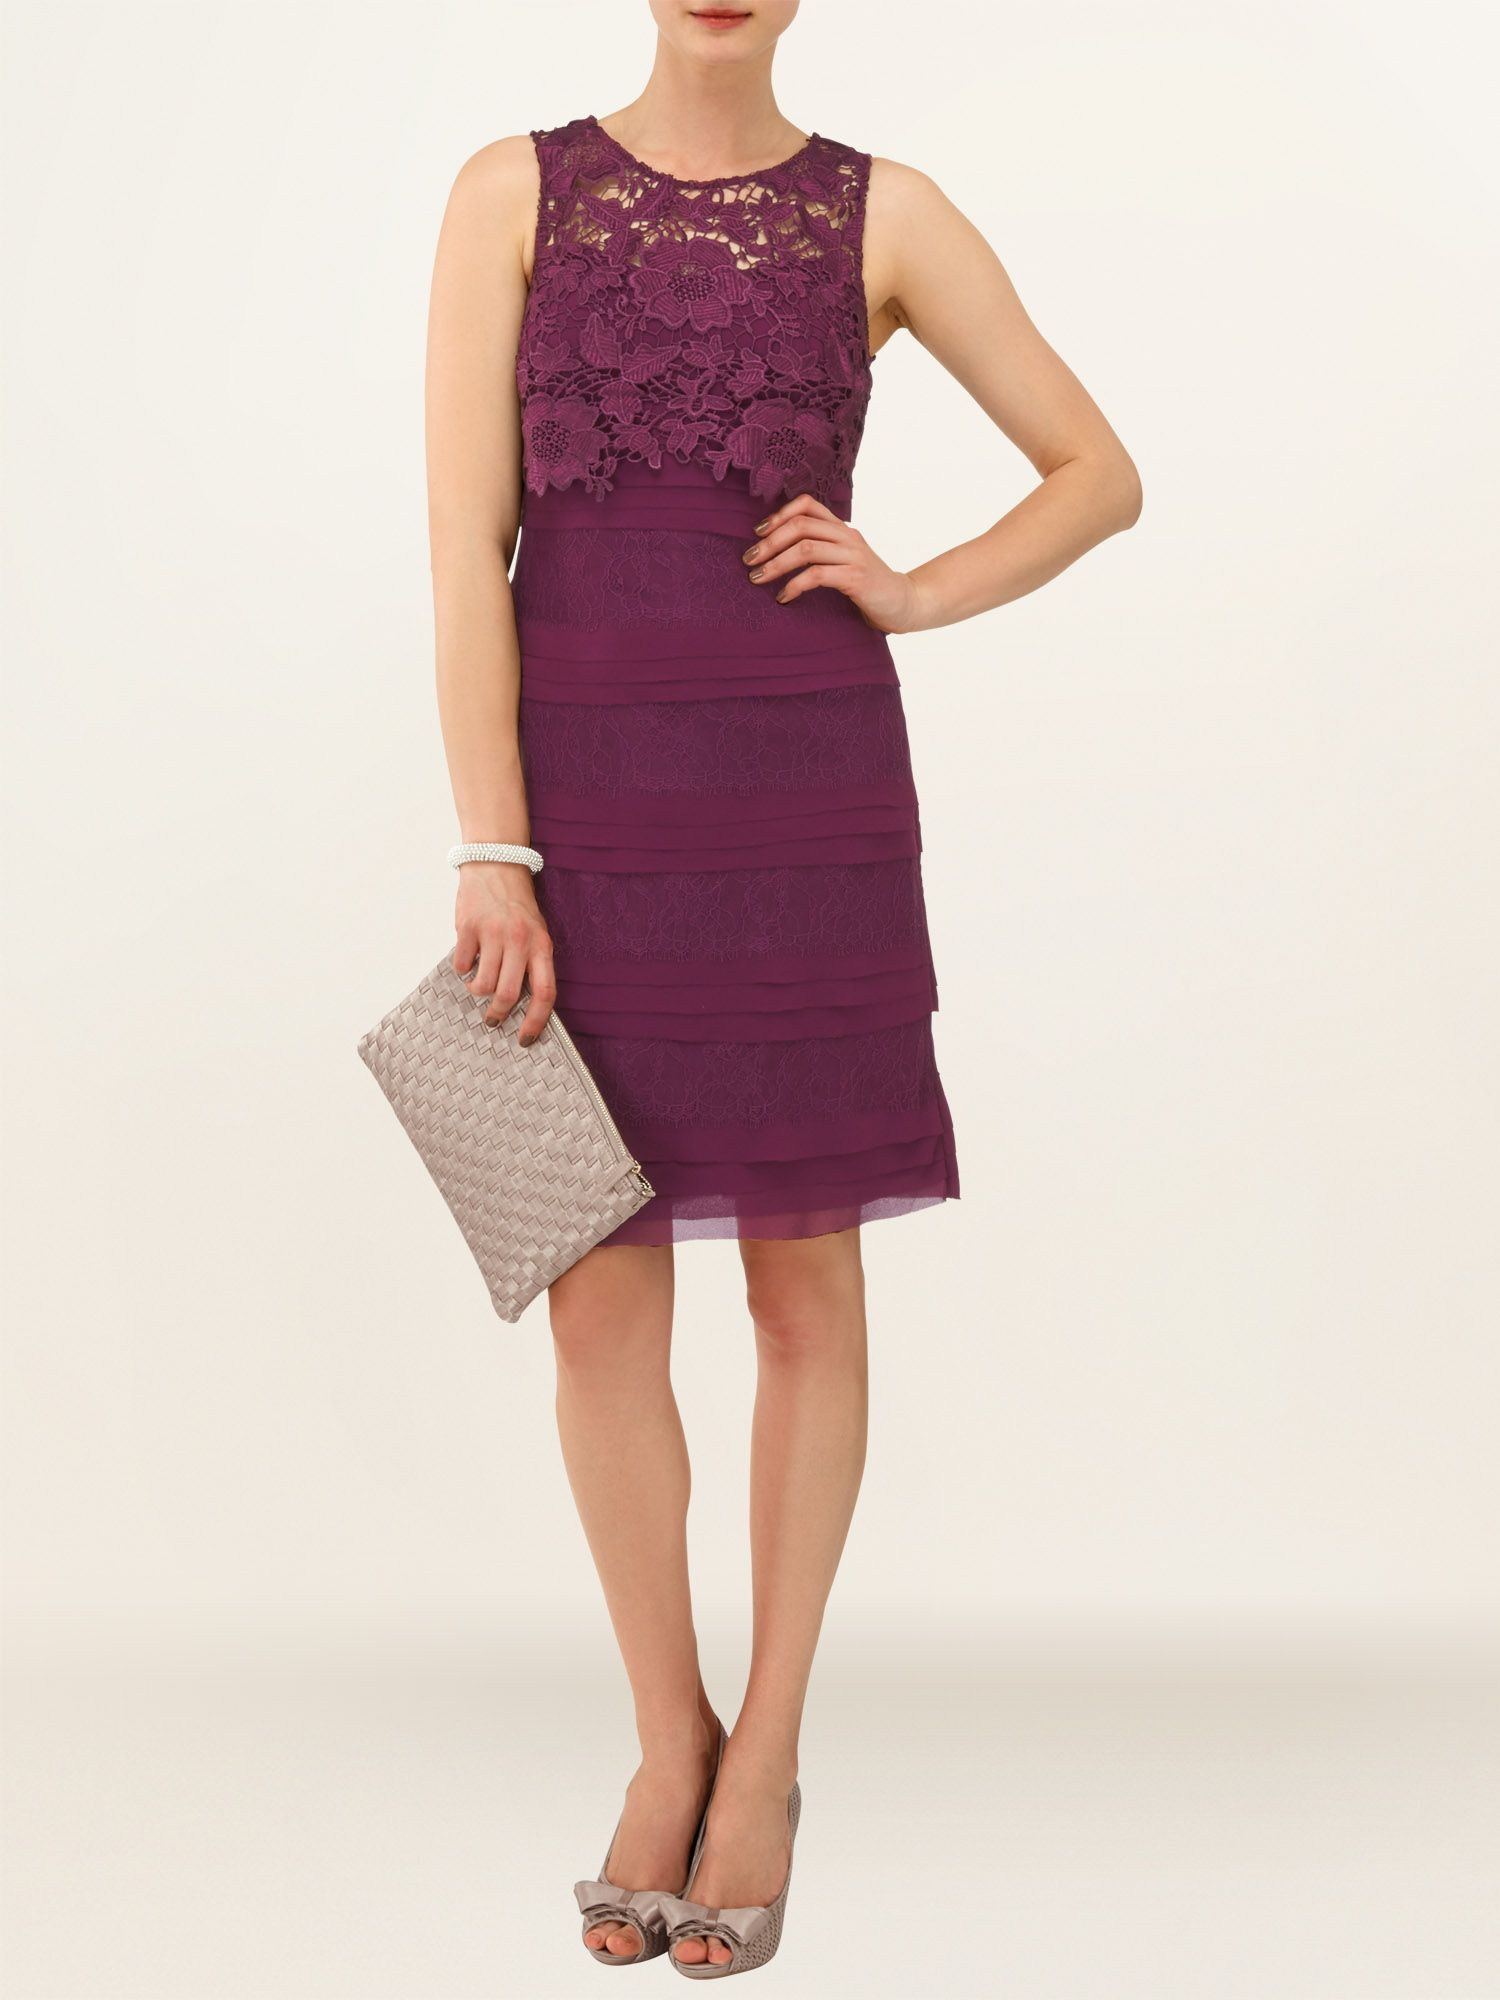 Carlotta layered dress